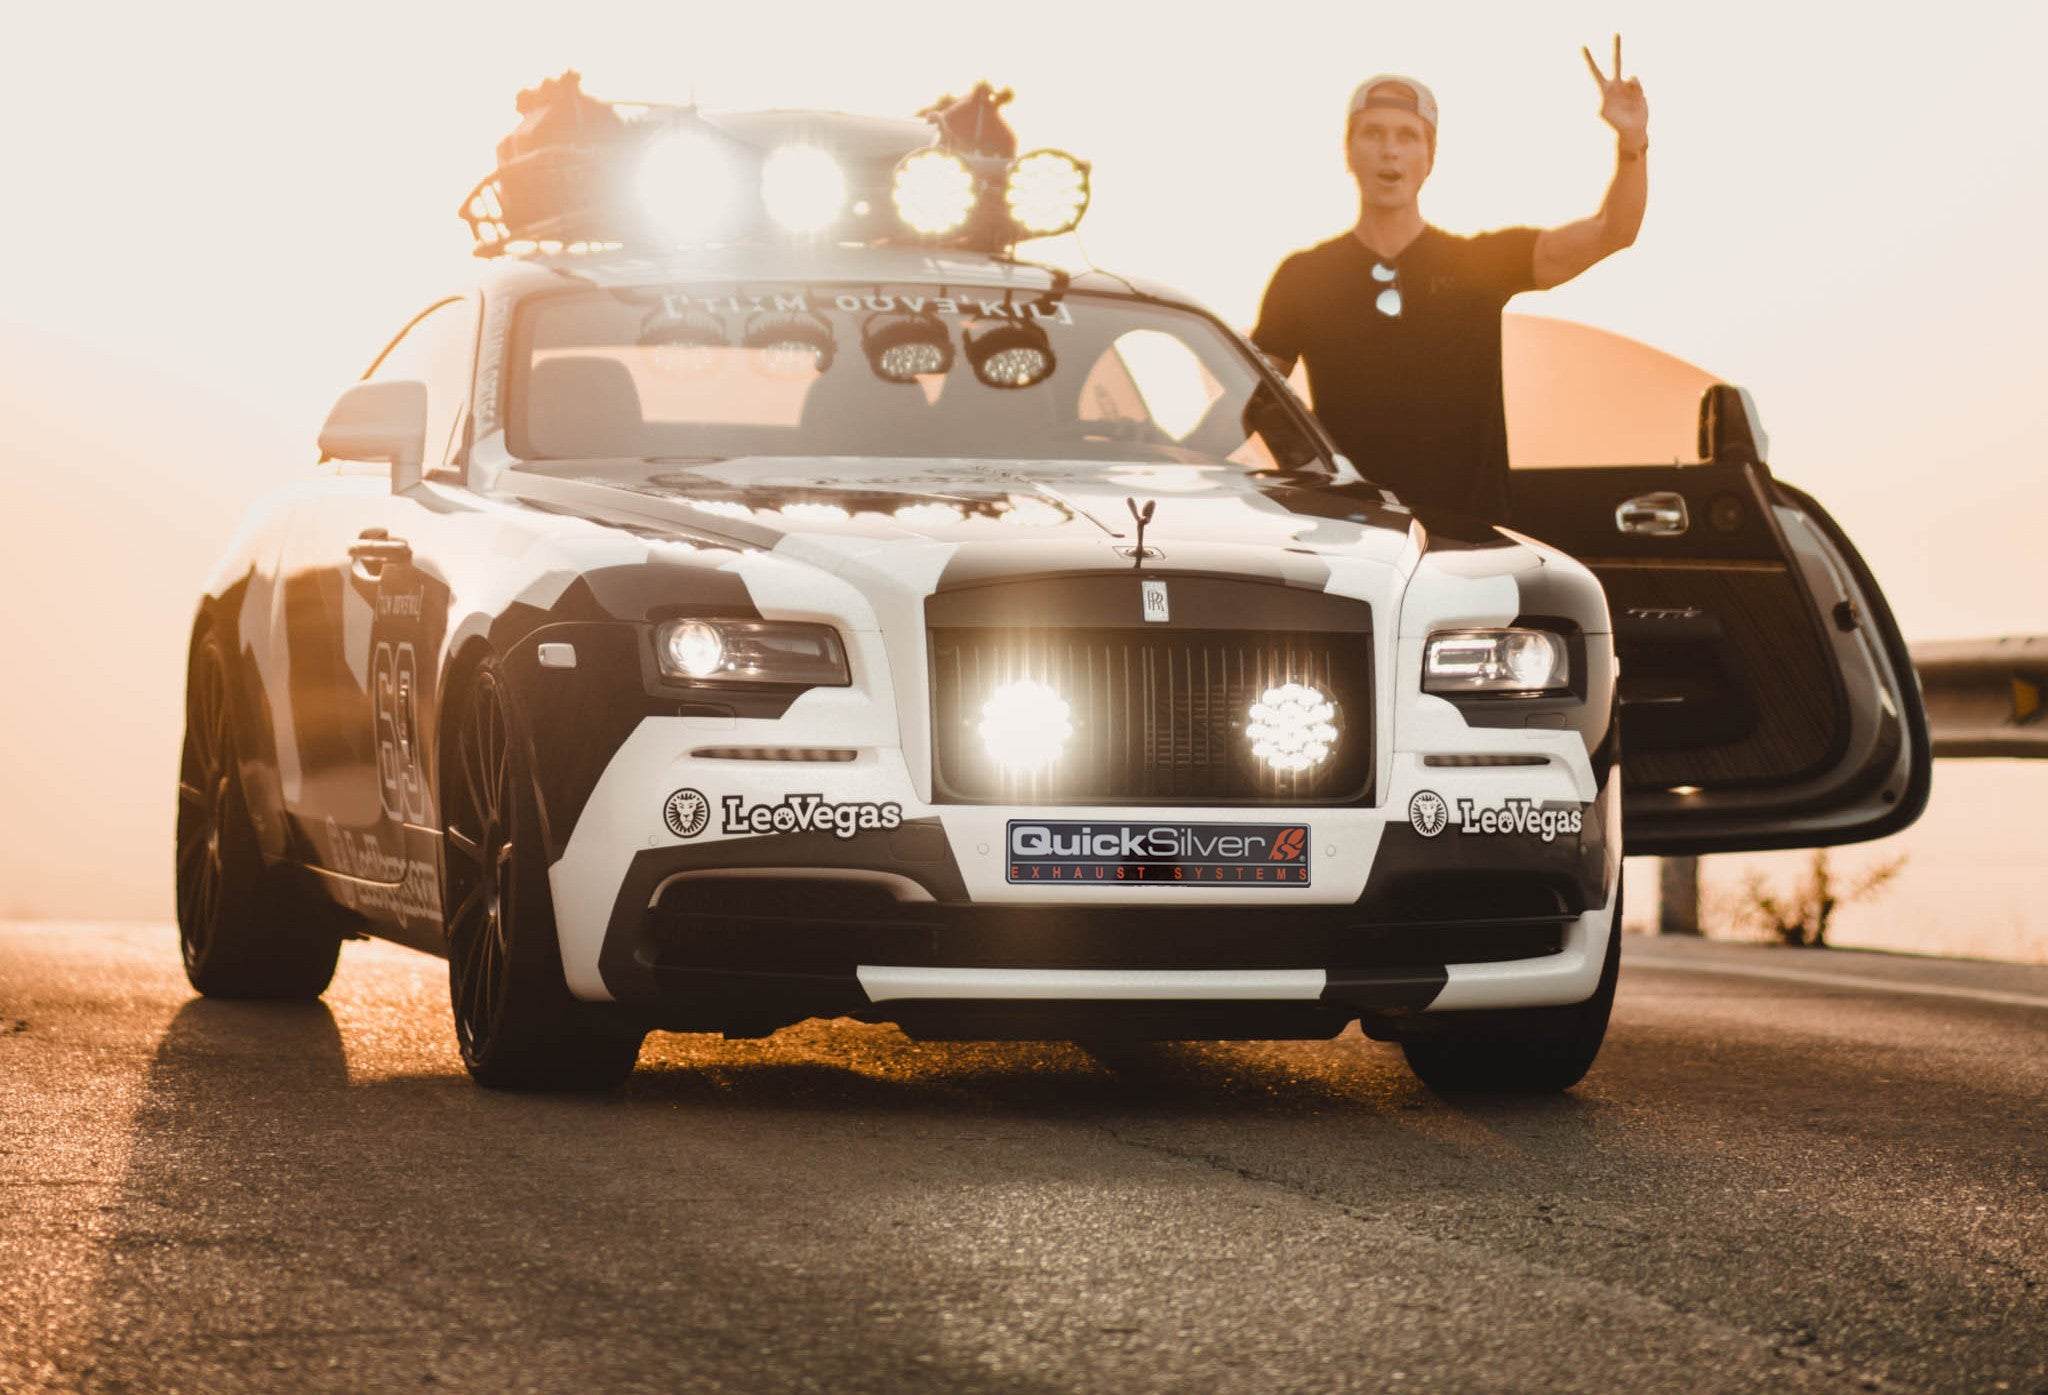 QuickSilver X Jon Olsson: George The Rolls-Royce